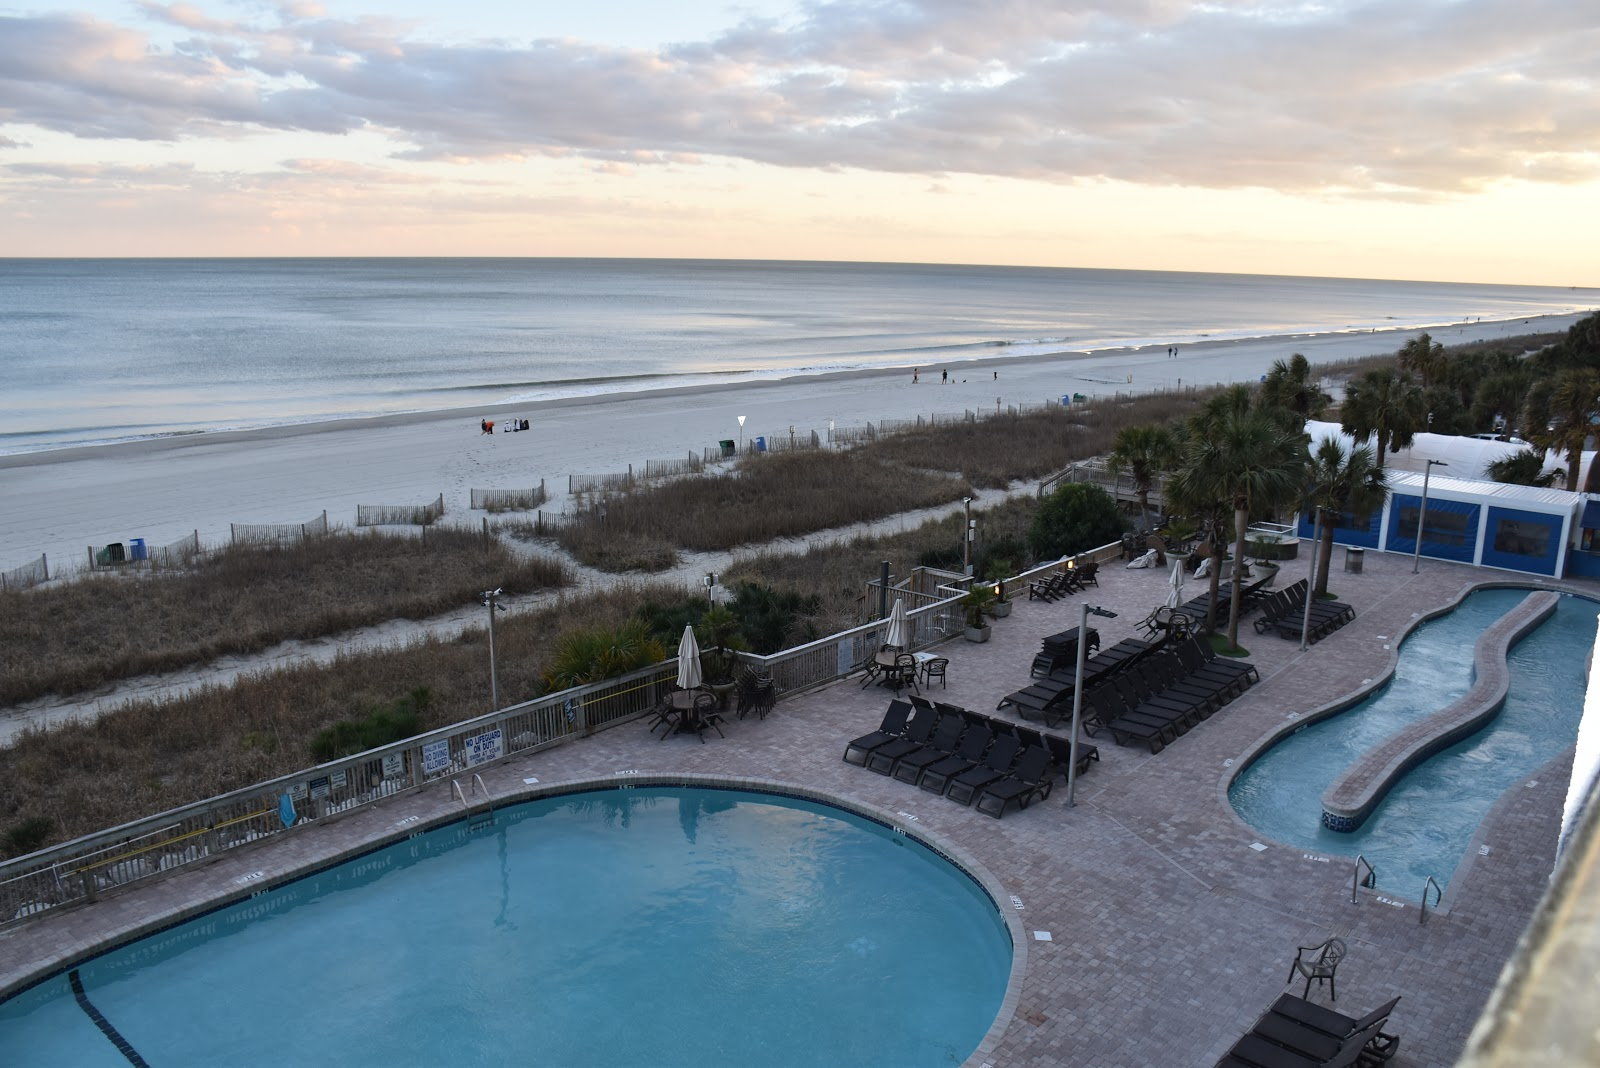 Outdoor pool and lazy river at Caribbean Resort and Villas in Myrtle Beach